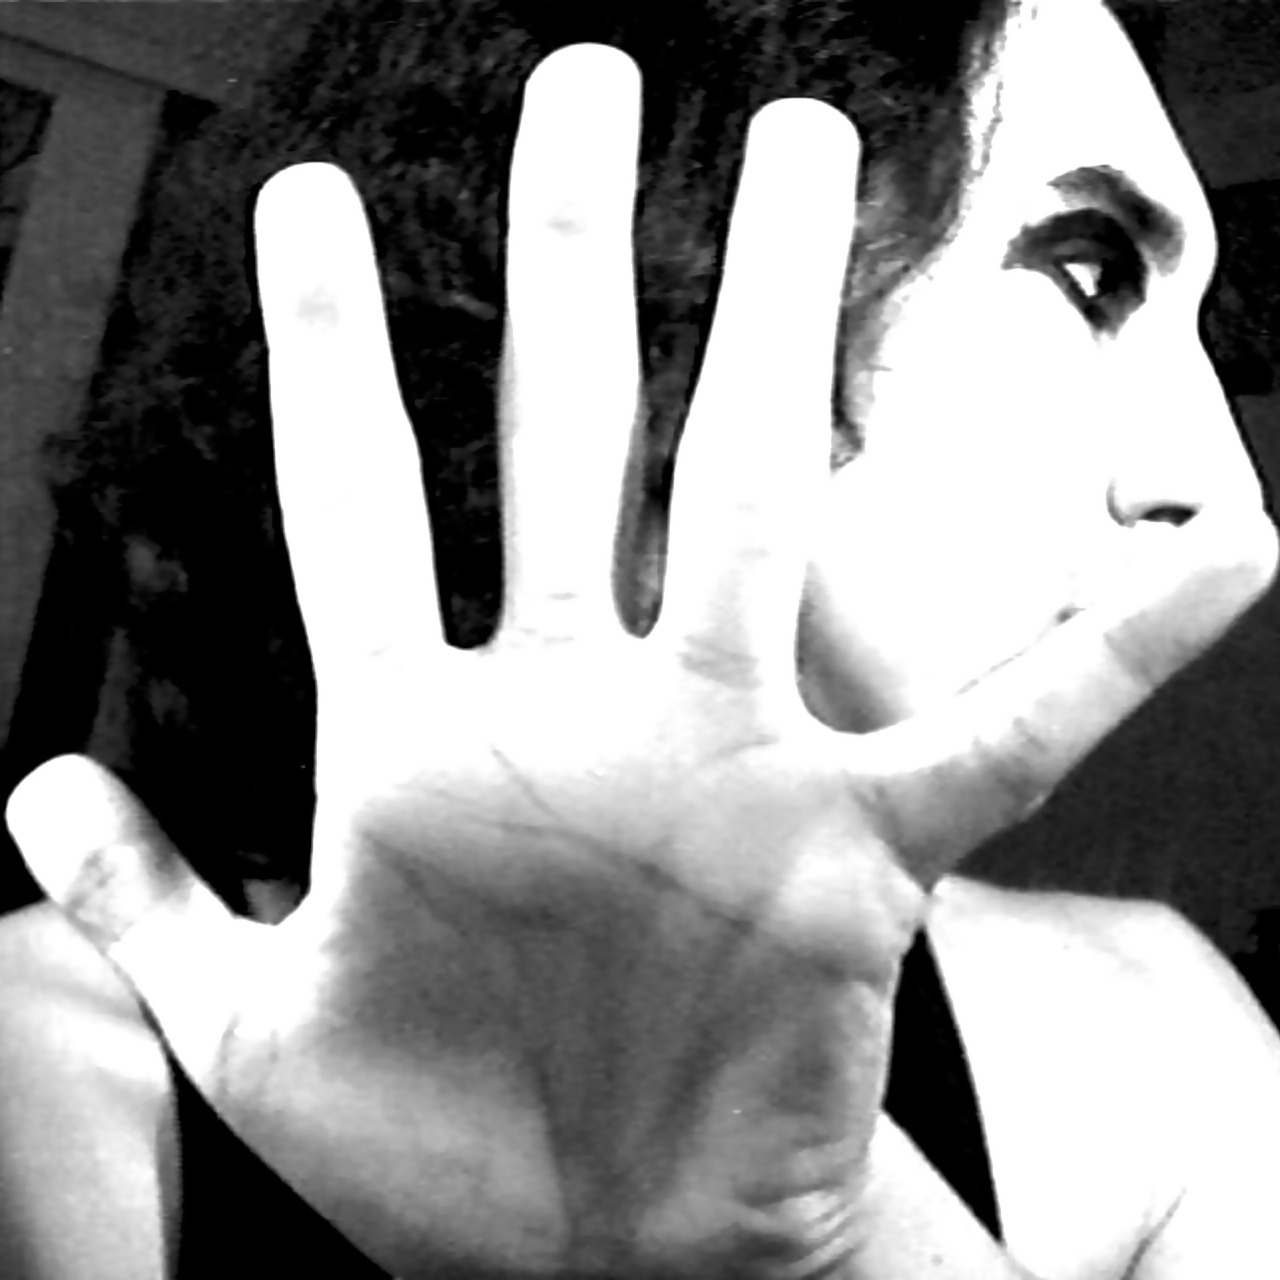 #me#hands#goth#goth goth#selfie#long fingers#sexy hands#my hands#spooky#creepy #ok to reblog #bw